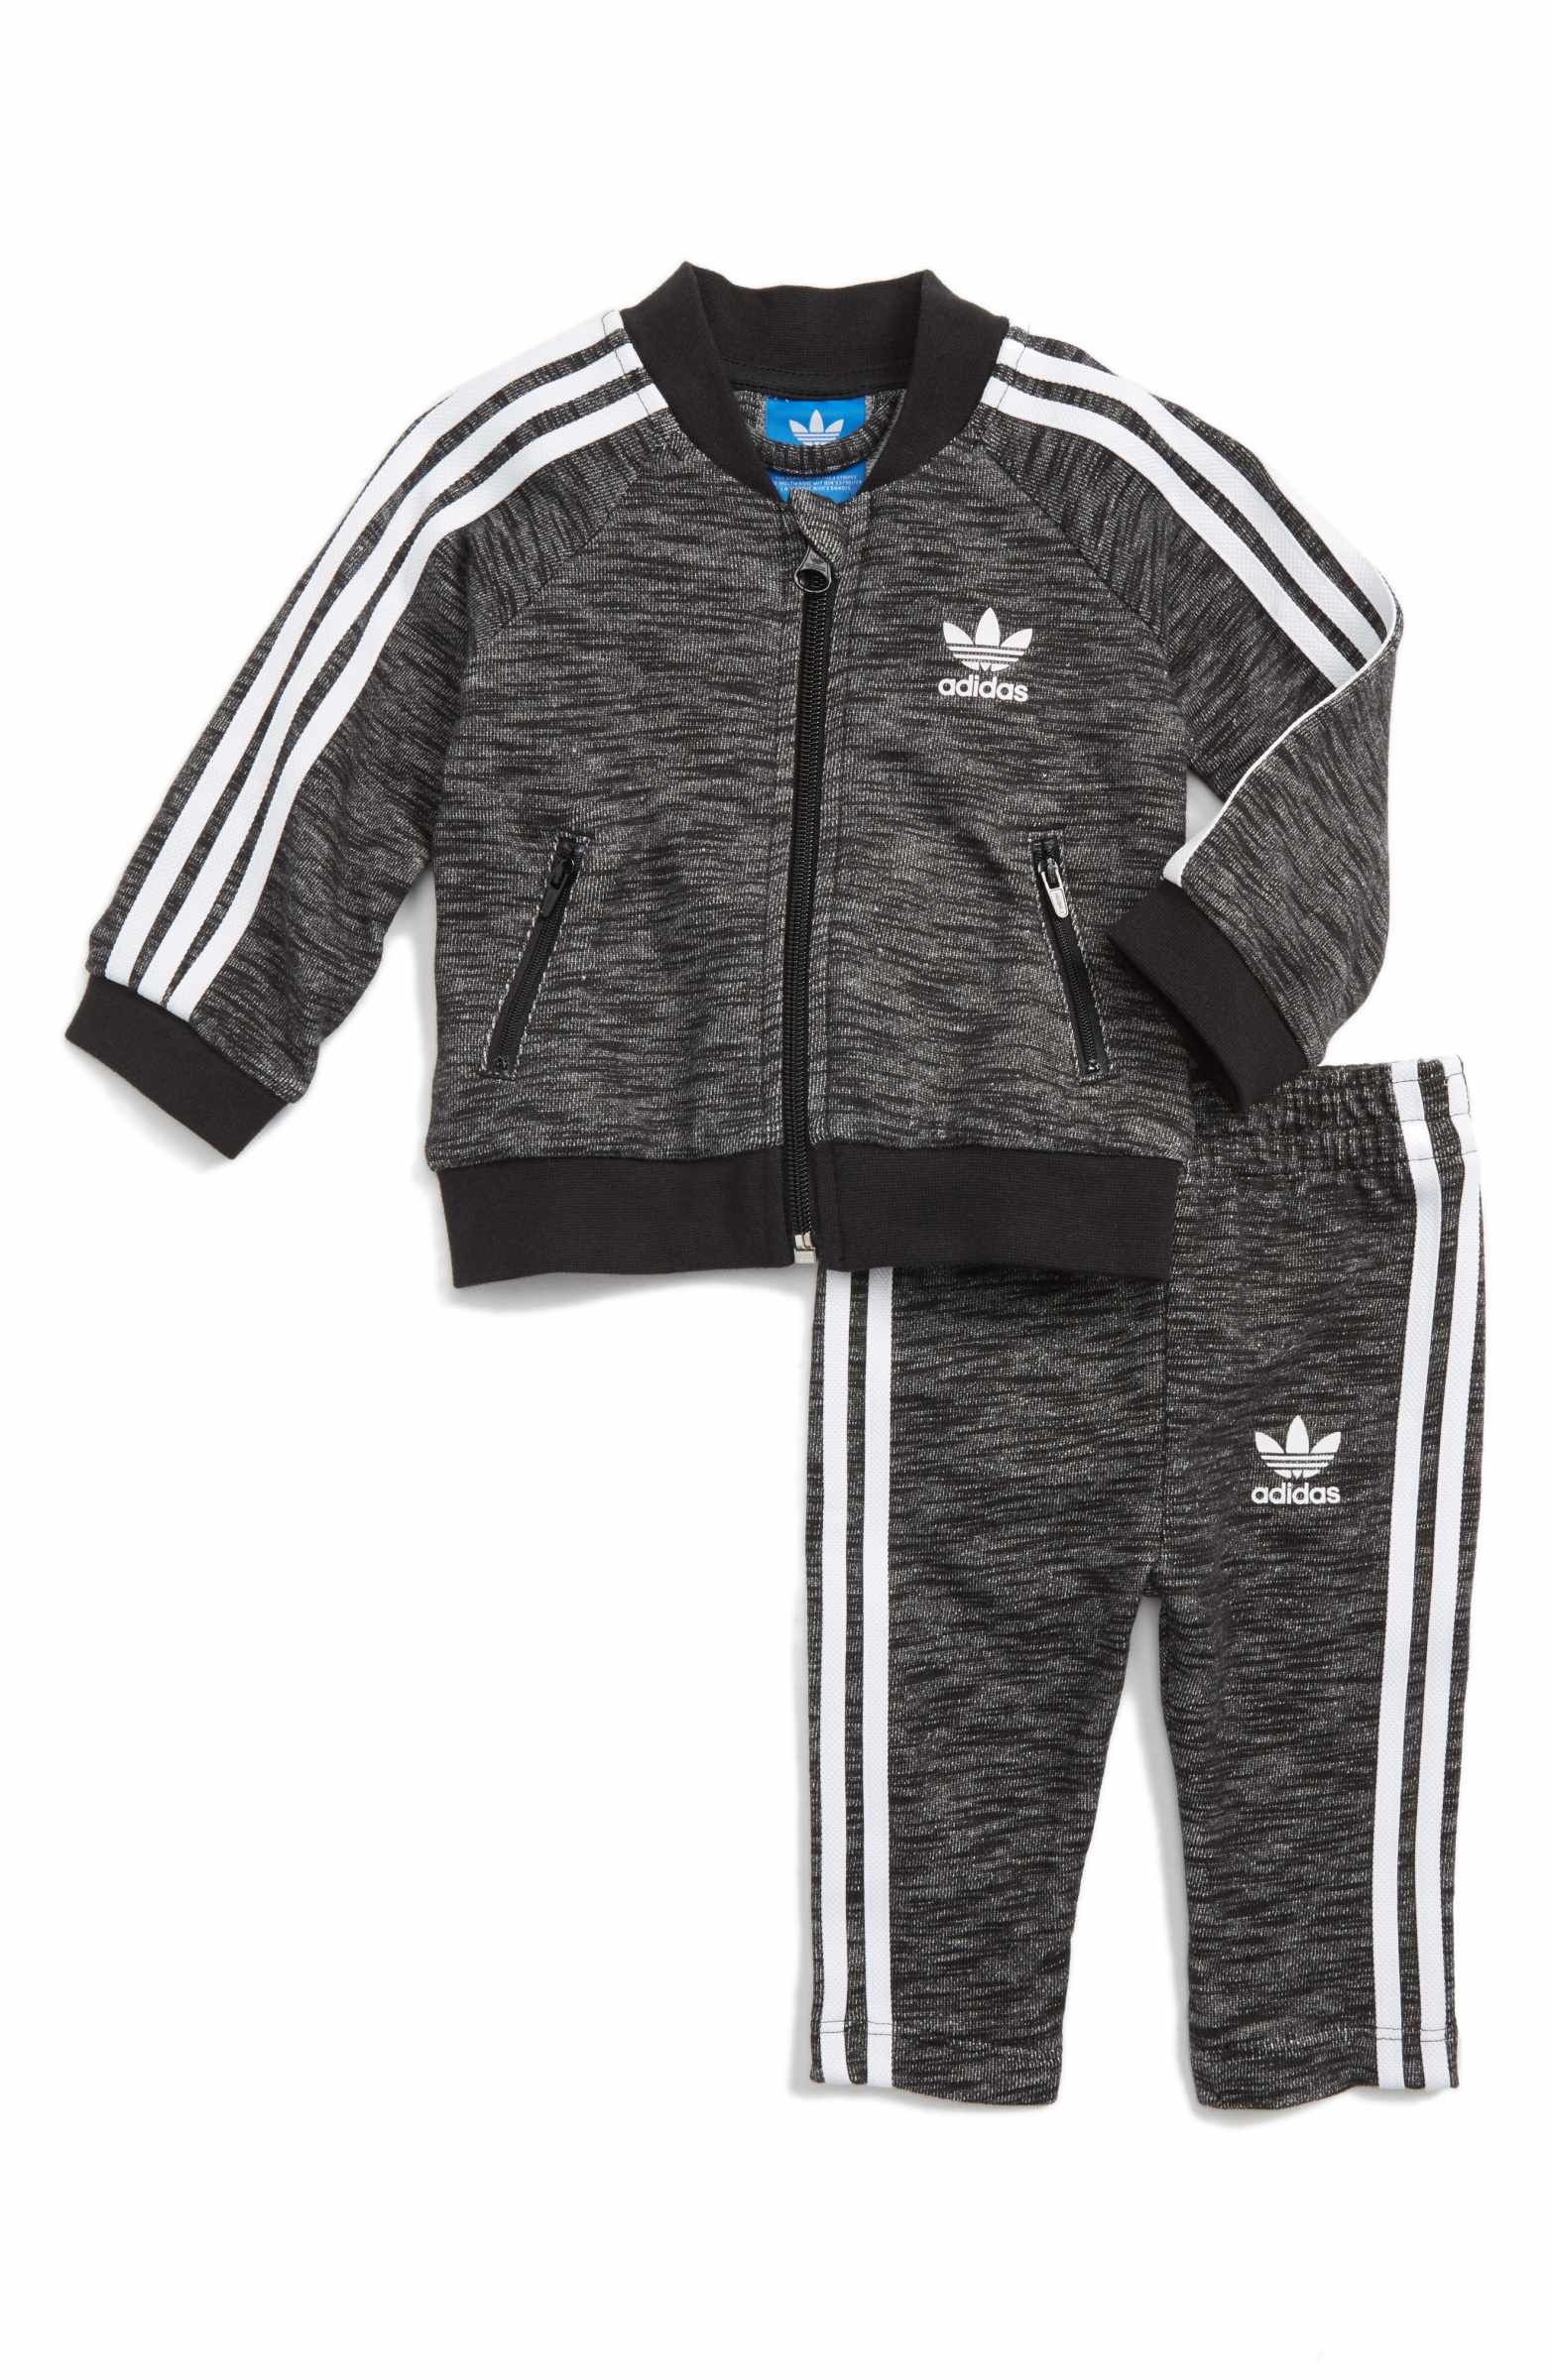 Main Image - adidas Superstar Track Jacket   Pants Set (Baby Boys ... a61b8164c7b7